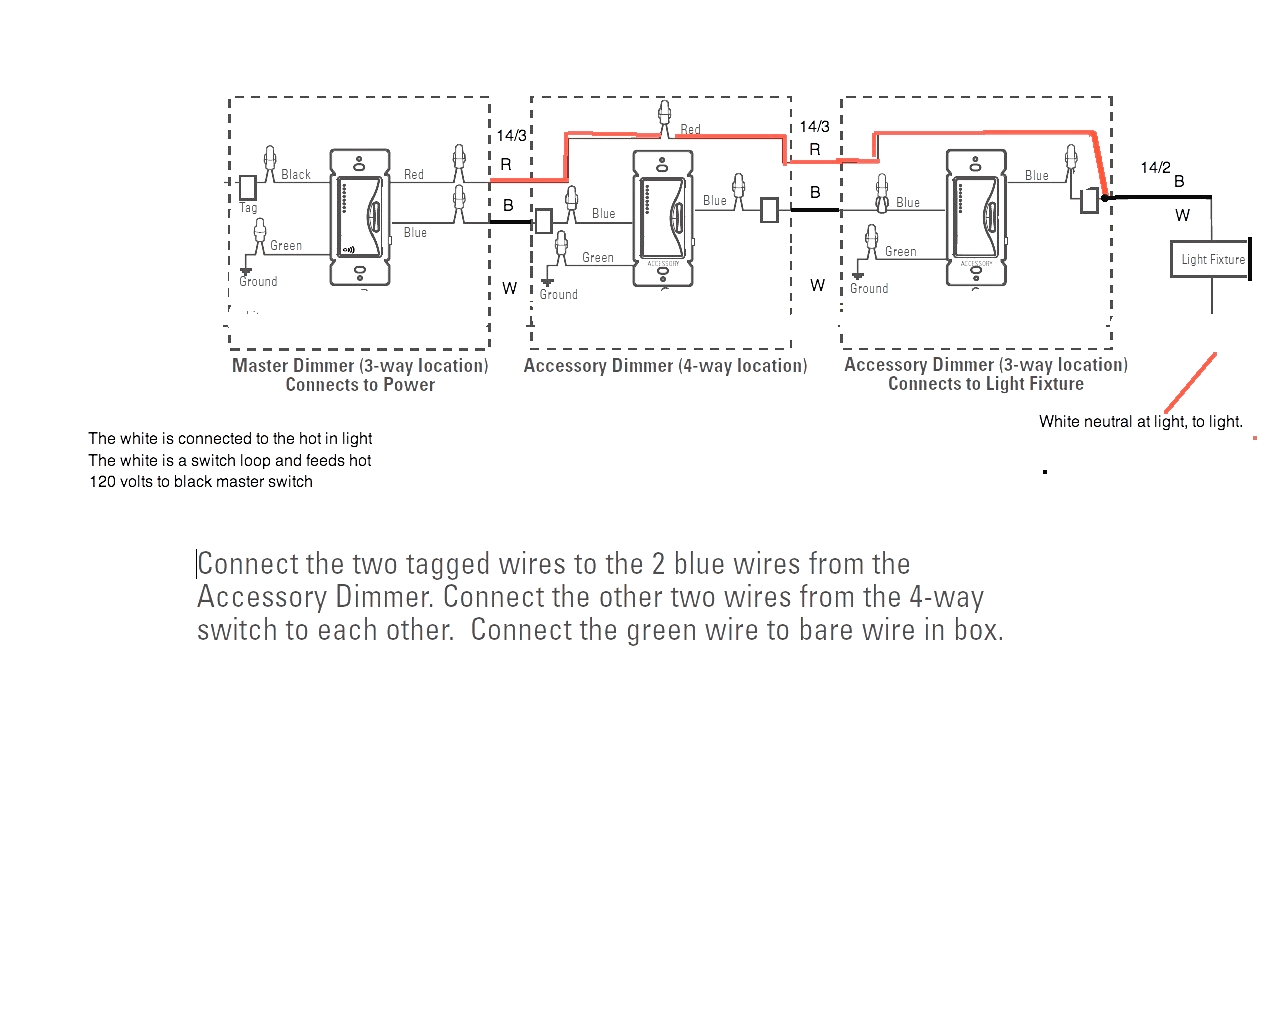 hight resolution of  electric 4 way z wave switch wiring diagram residential 4 way switch diagram electric nordyne nordyne electric furnace wiring diagram